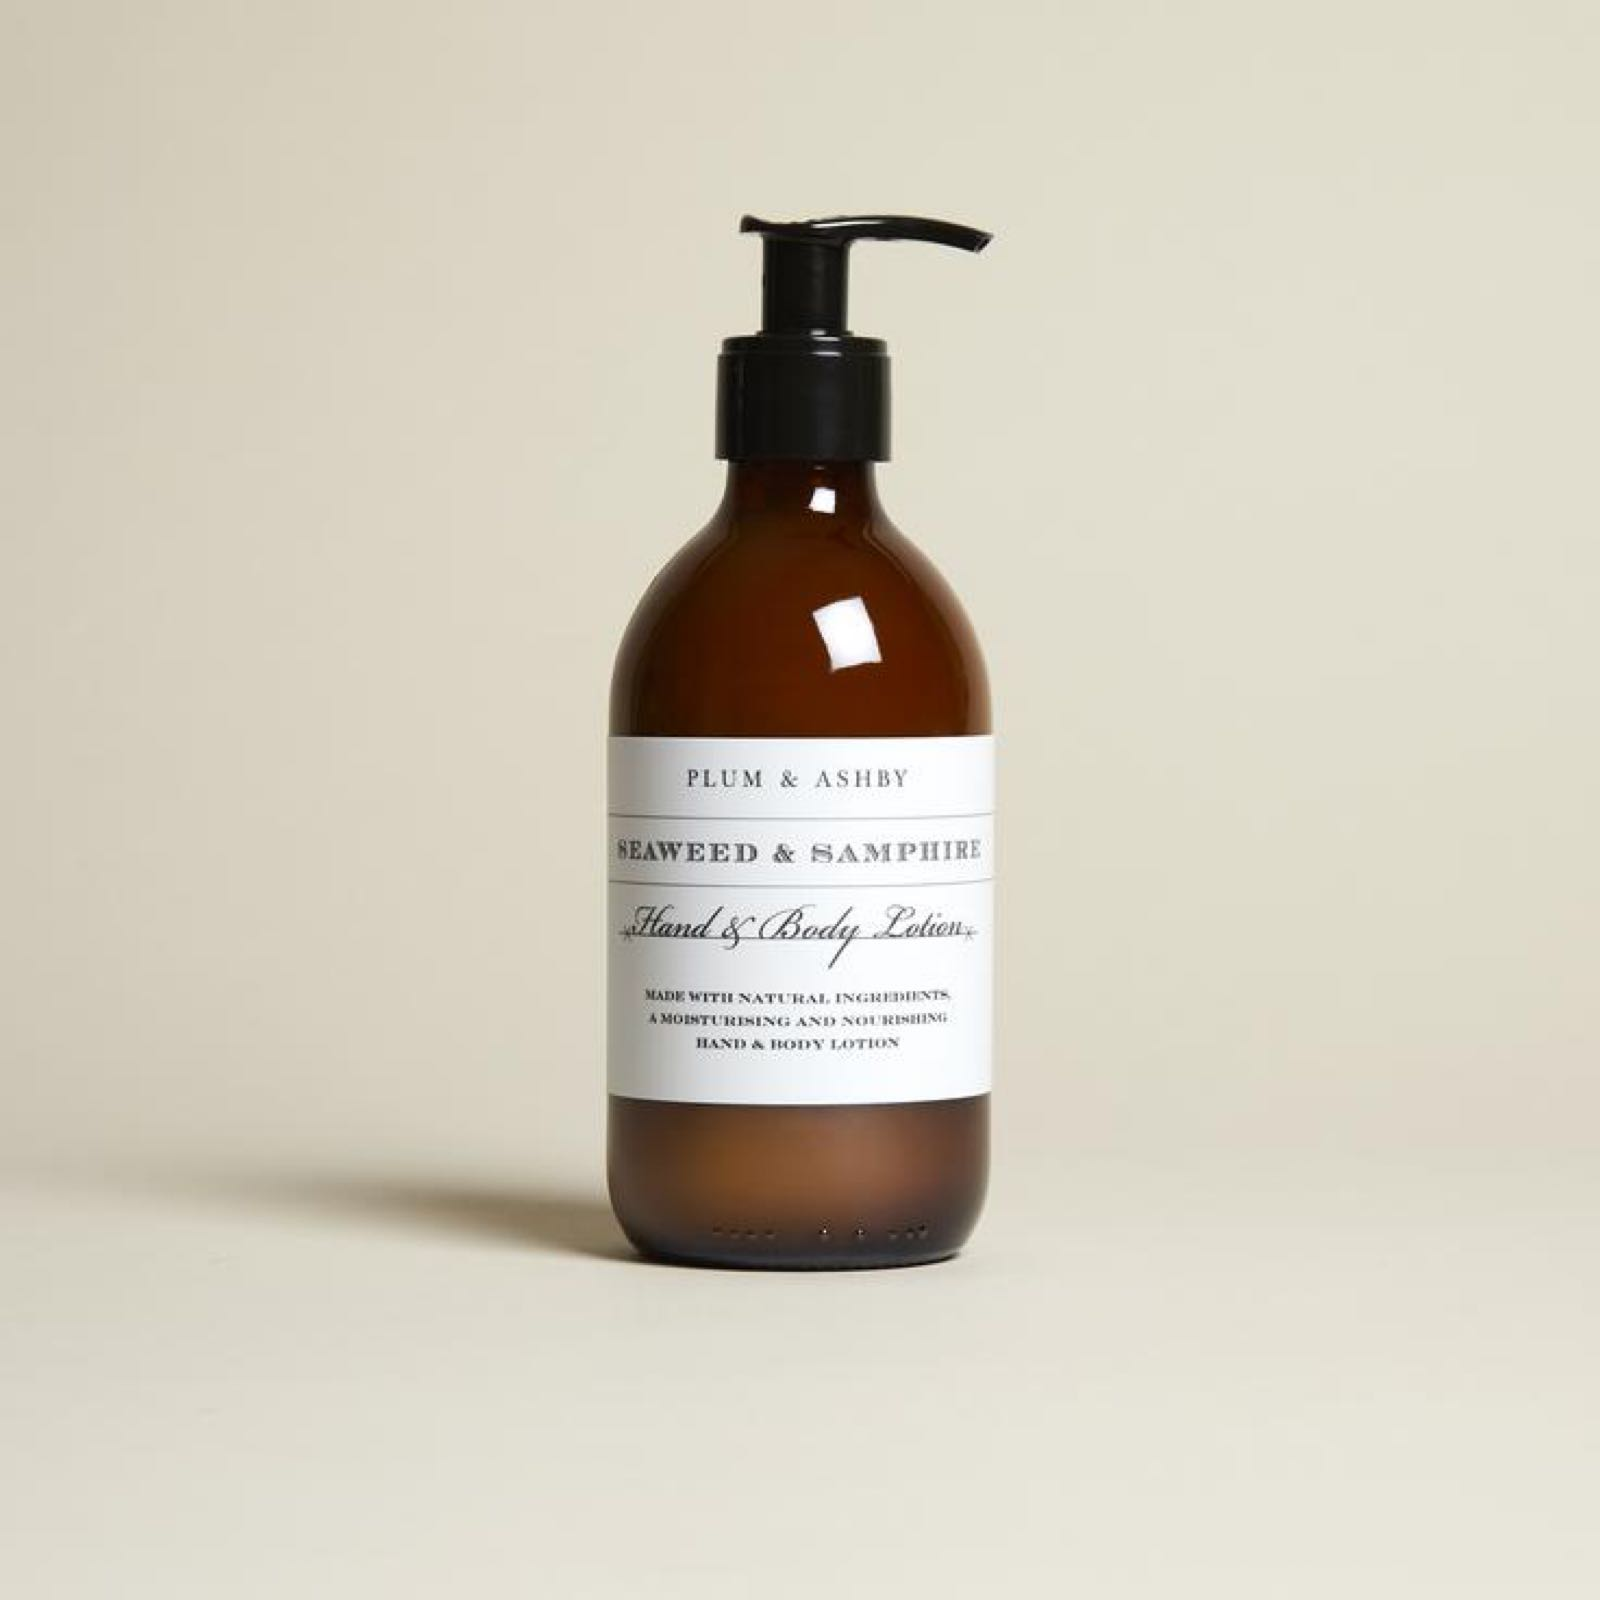 Plum & Ashby Seaweed and Samphire Hand and Body Lotion 300ml